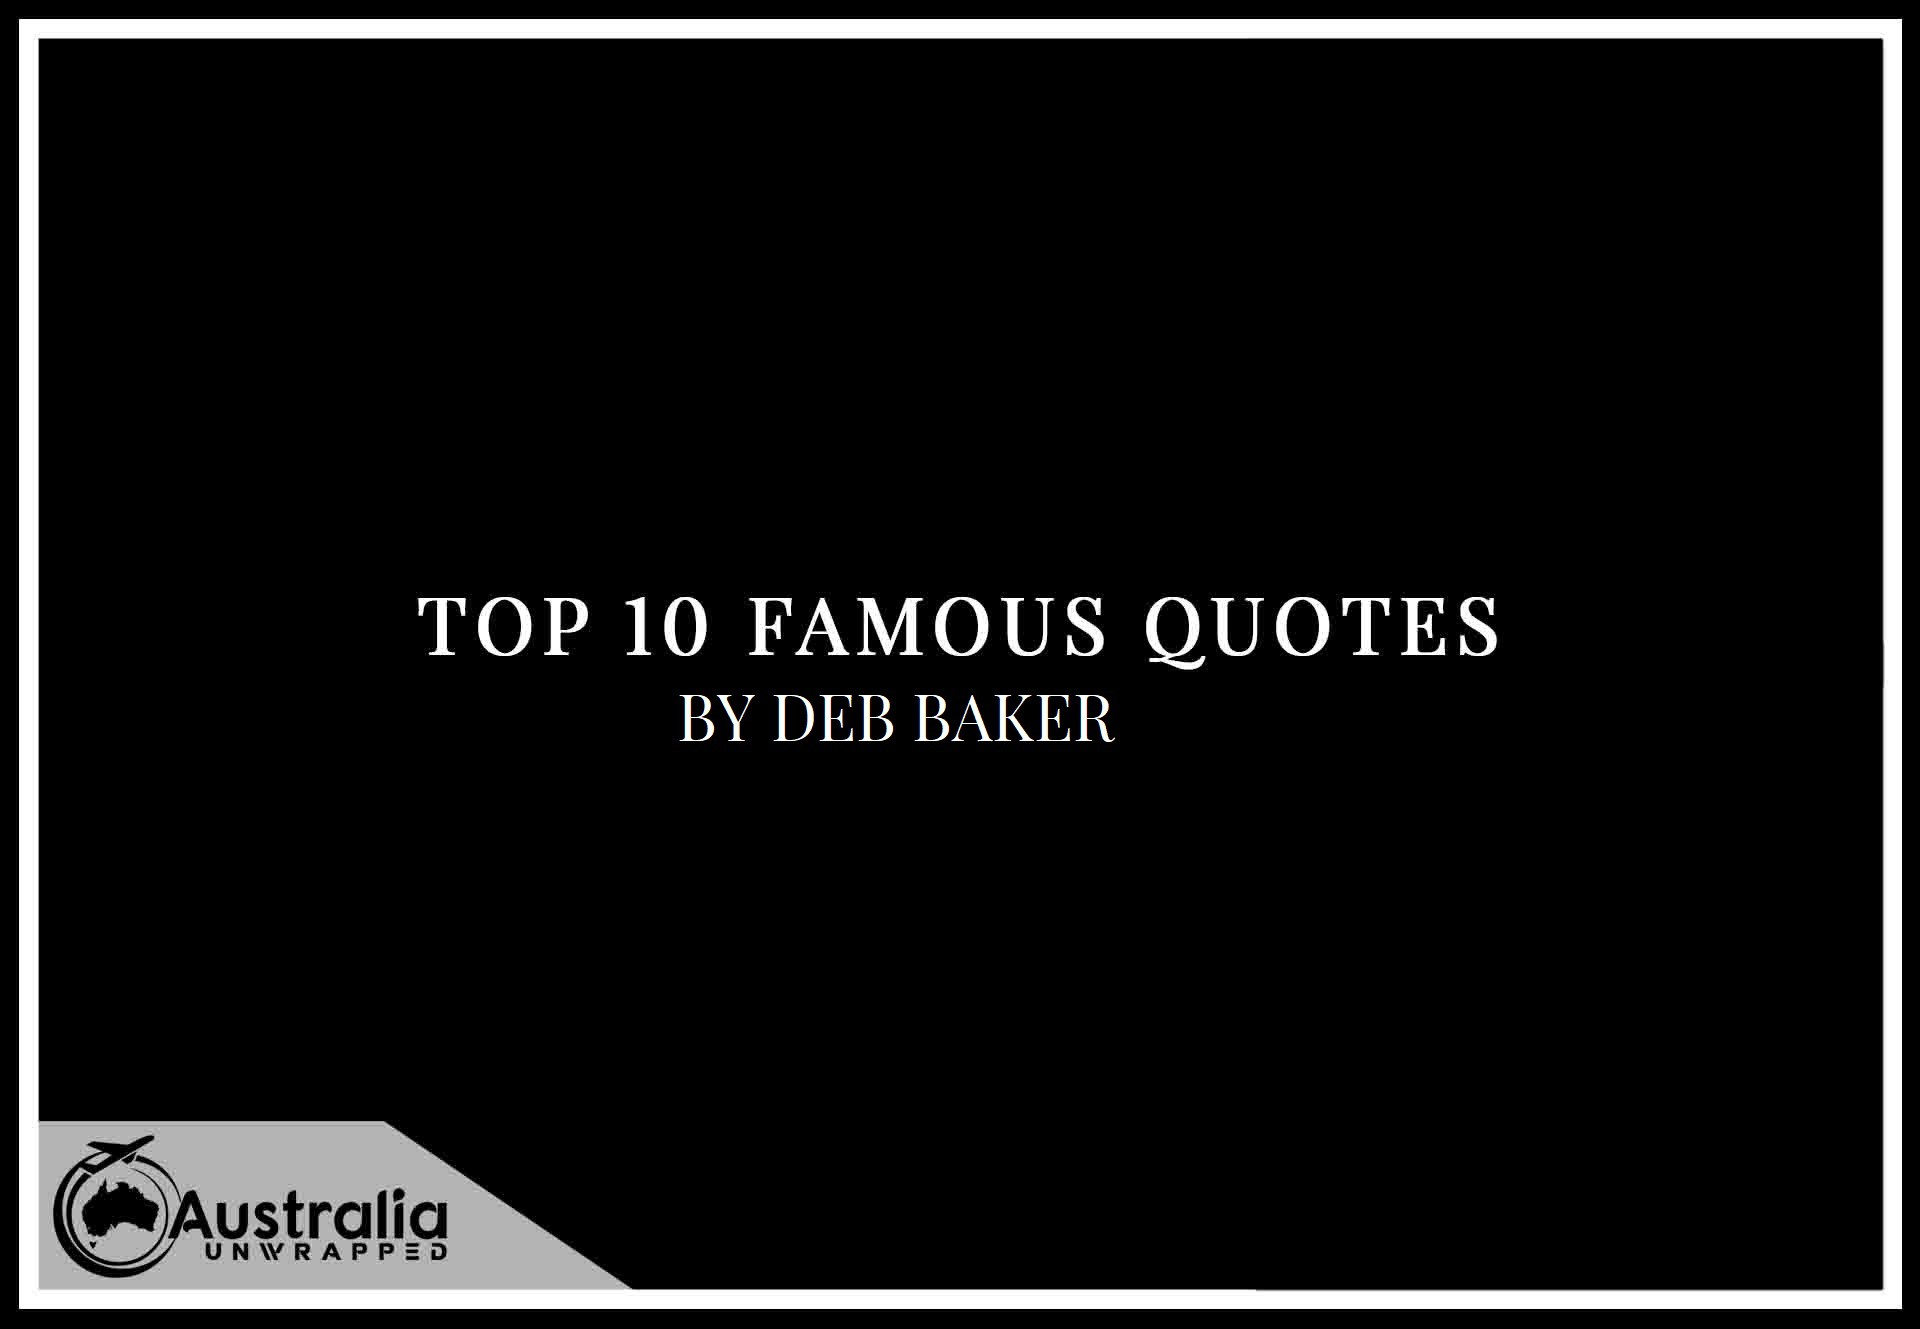 Top 10 Famous Quotes by Author Deb Baker